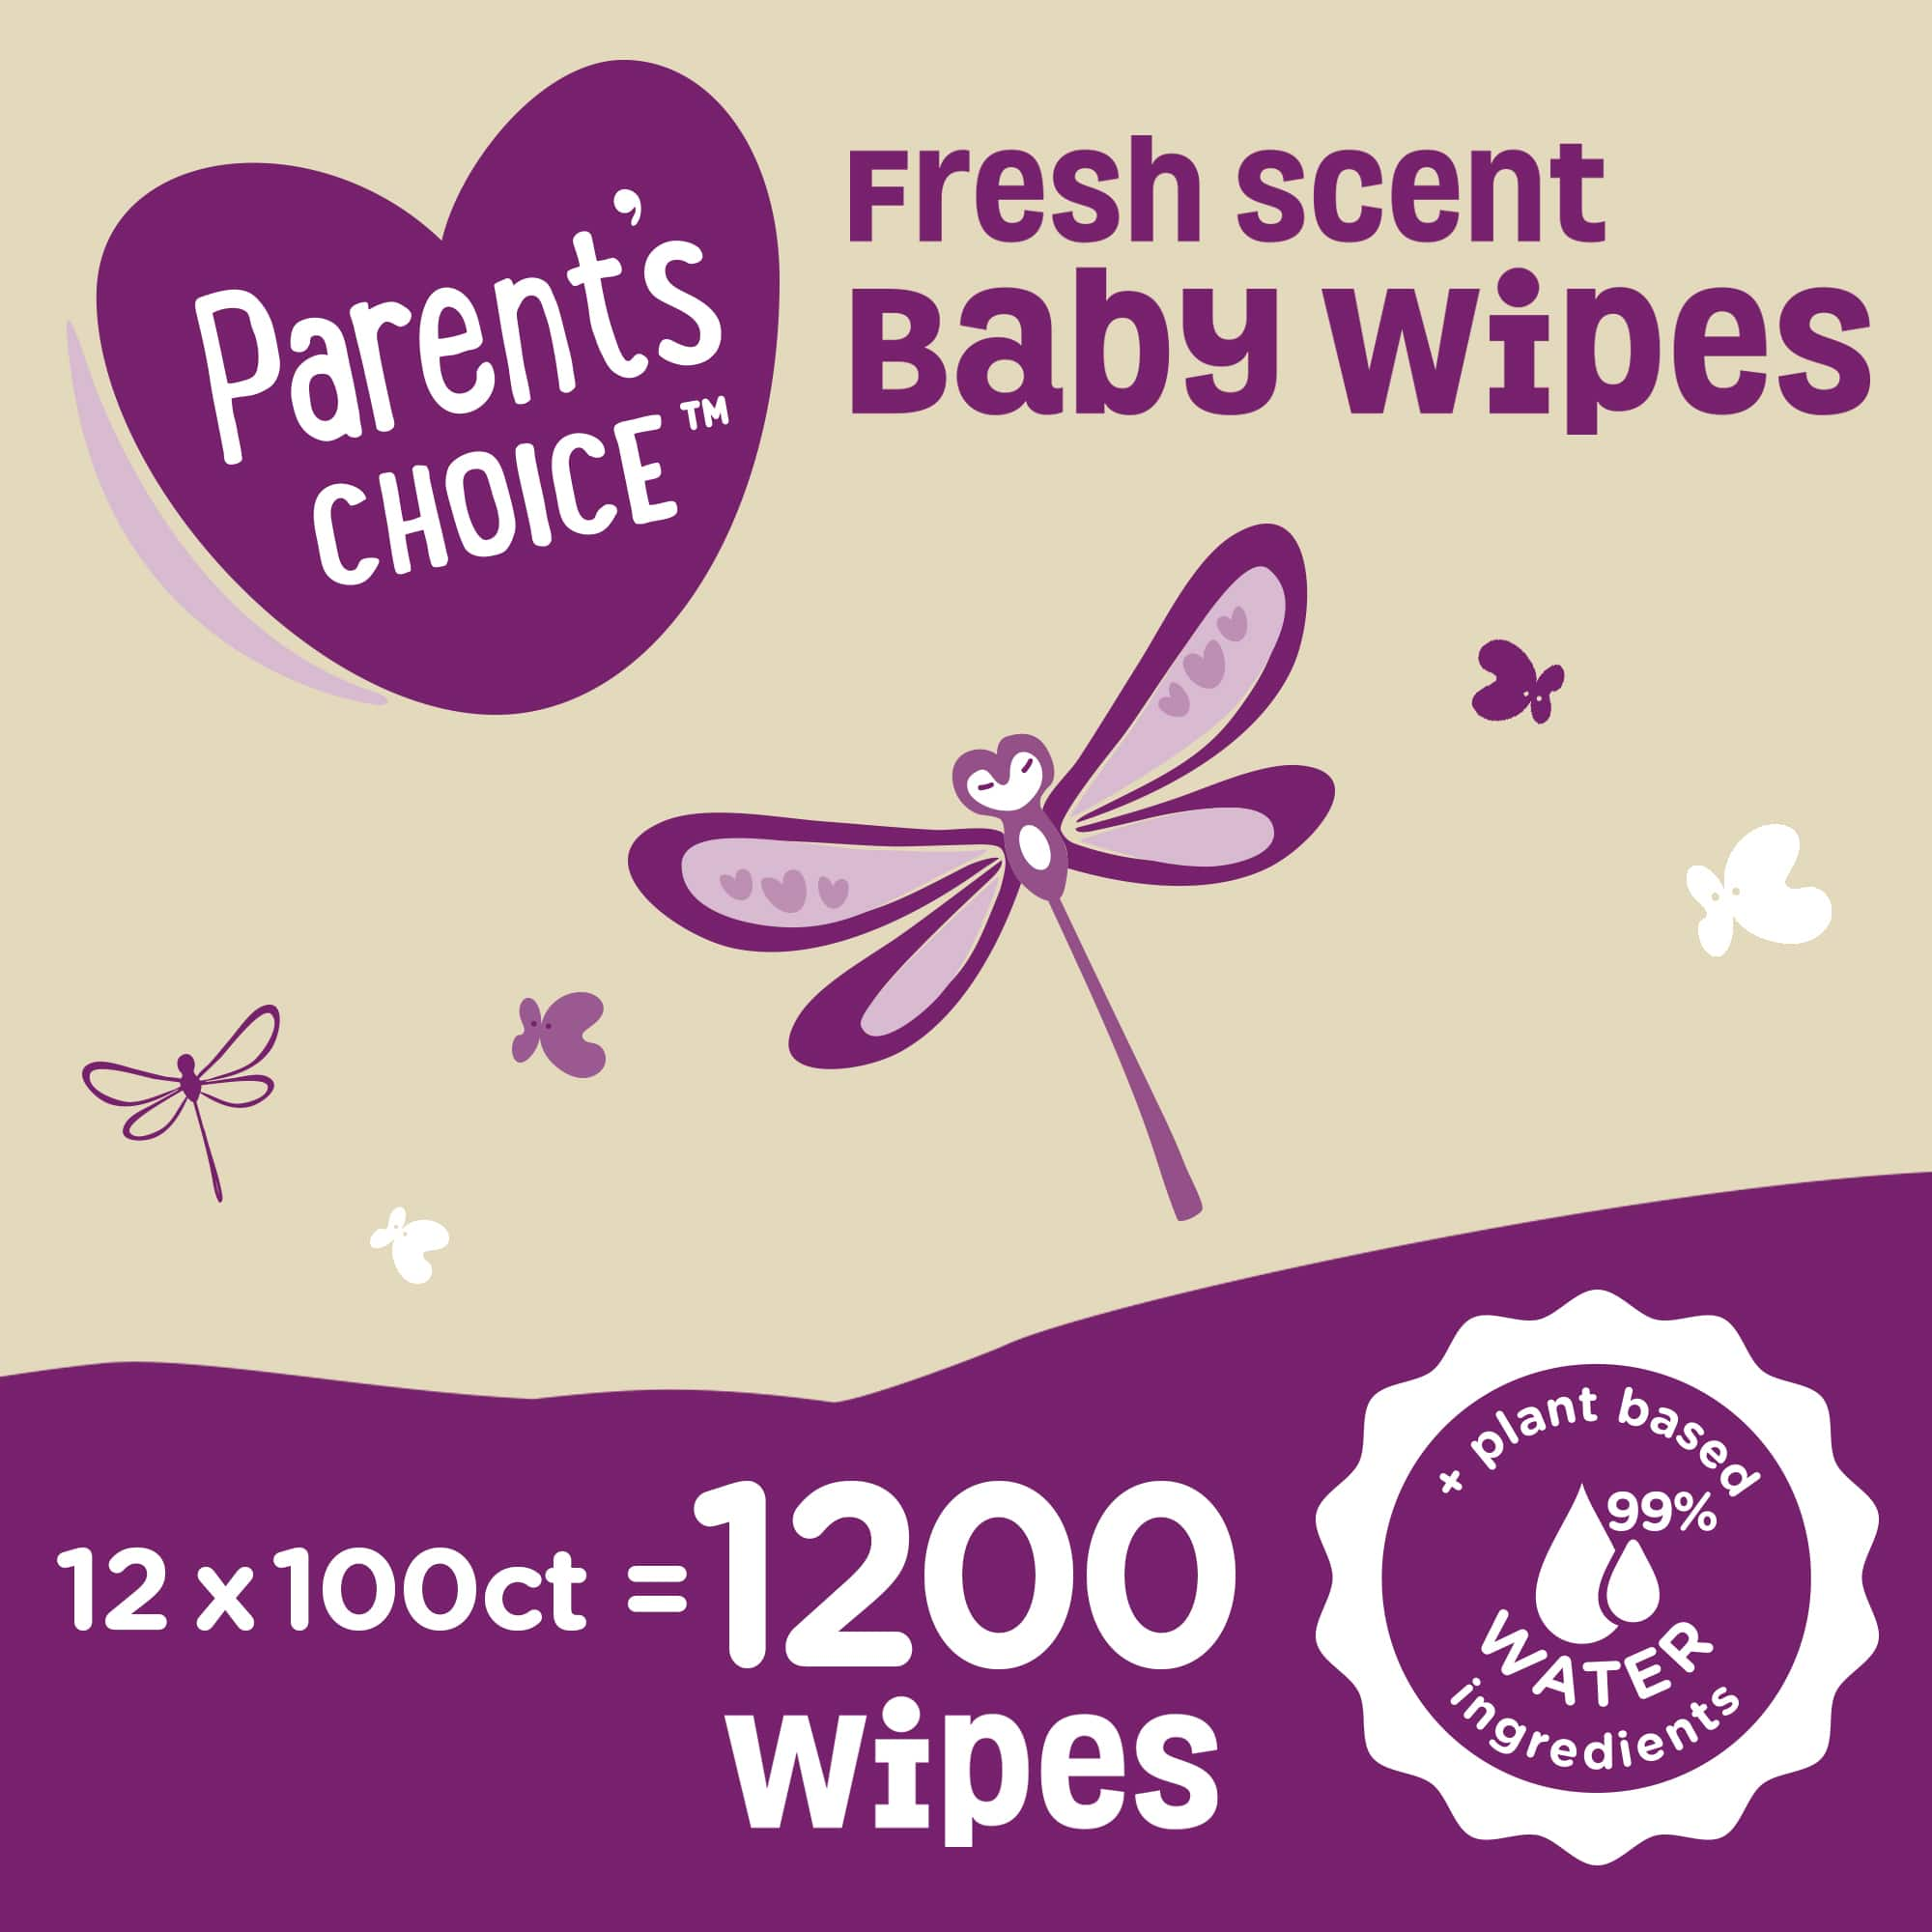 1,200-Ct Parent's Choice Baby Wipes,(various) $18.48 F/S at $35